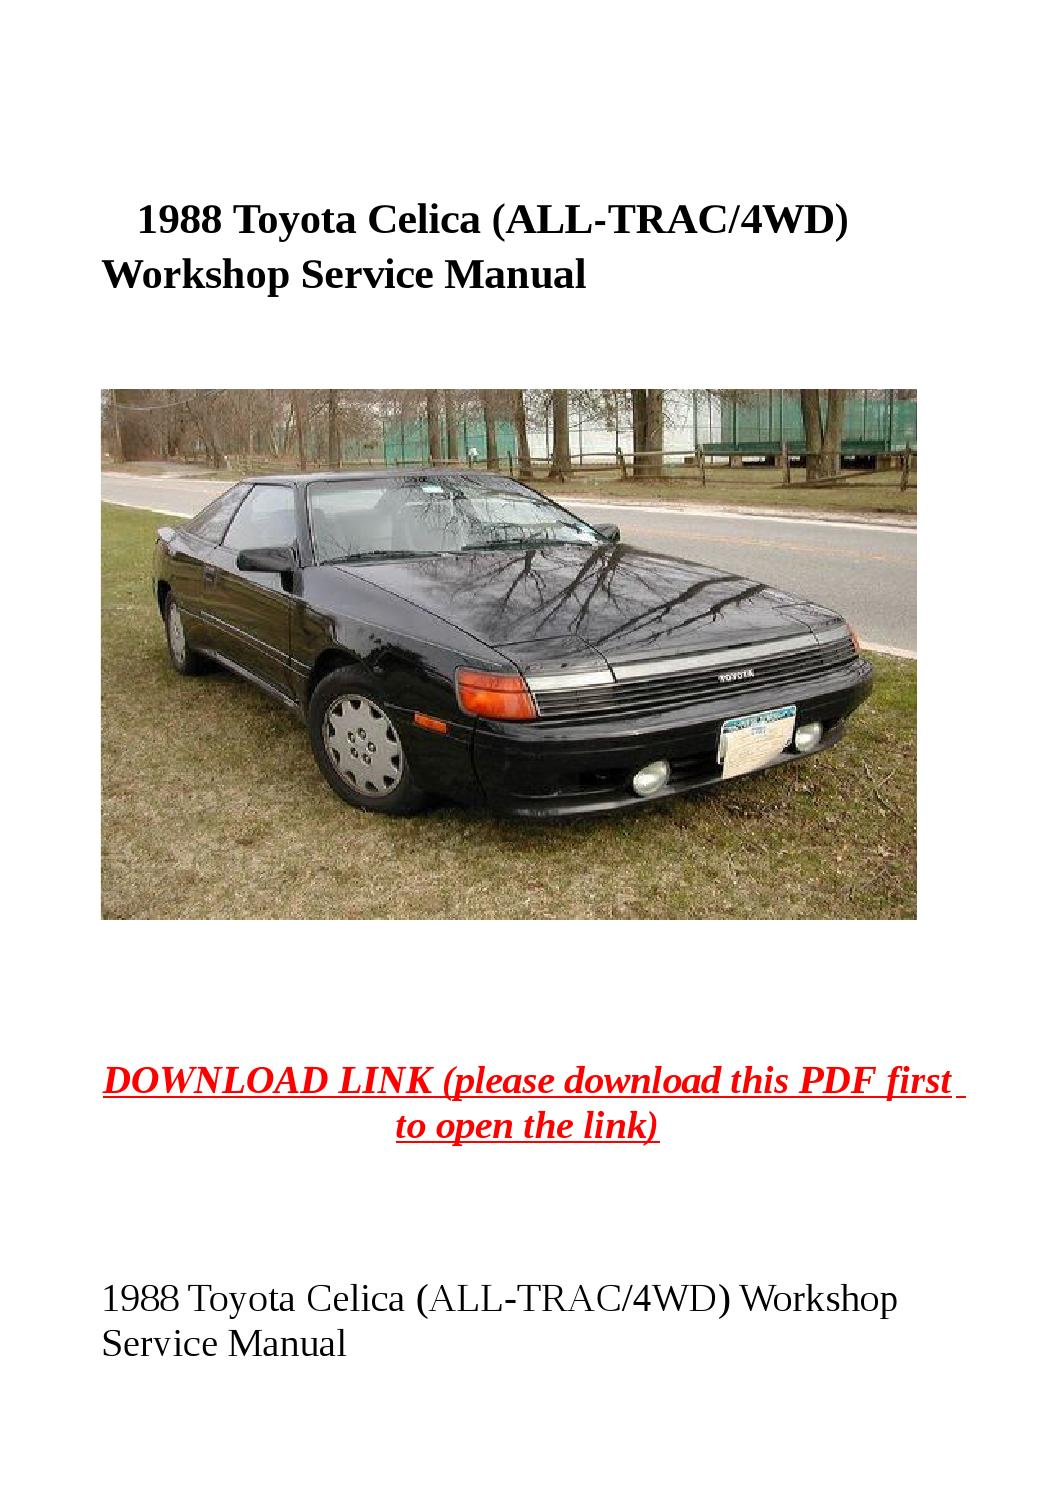 1988 Toyota Celica All Trac 4wd Workshop Service Manual By Sally Mool Issuu